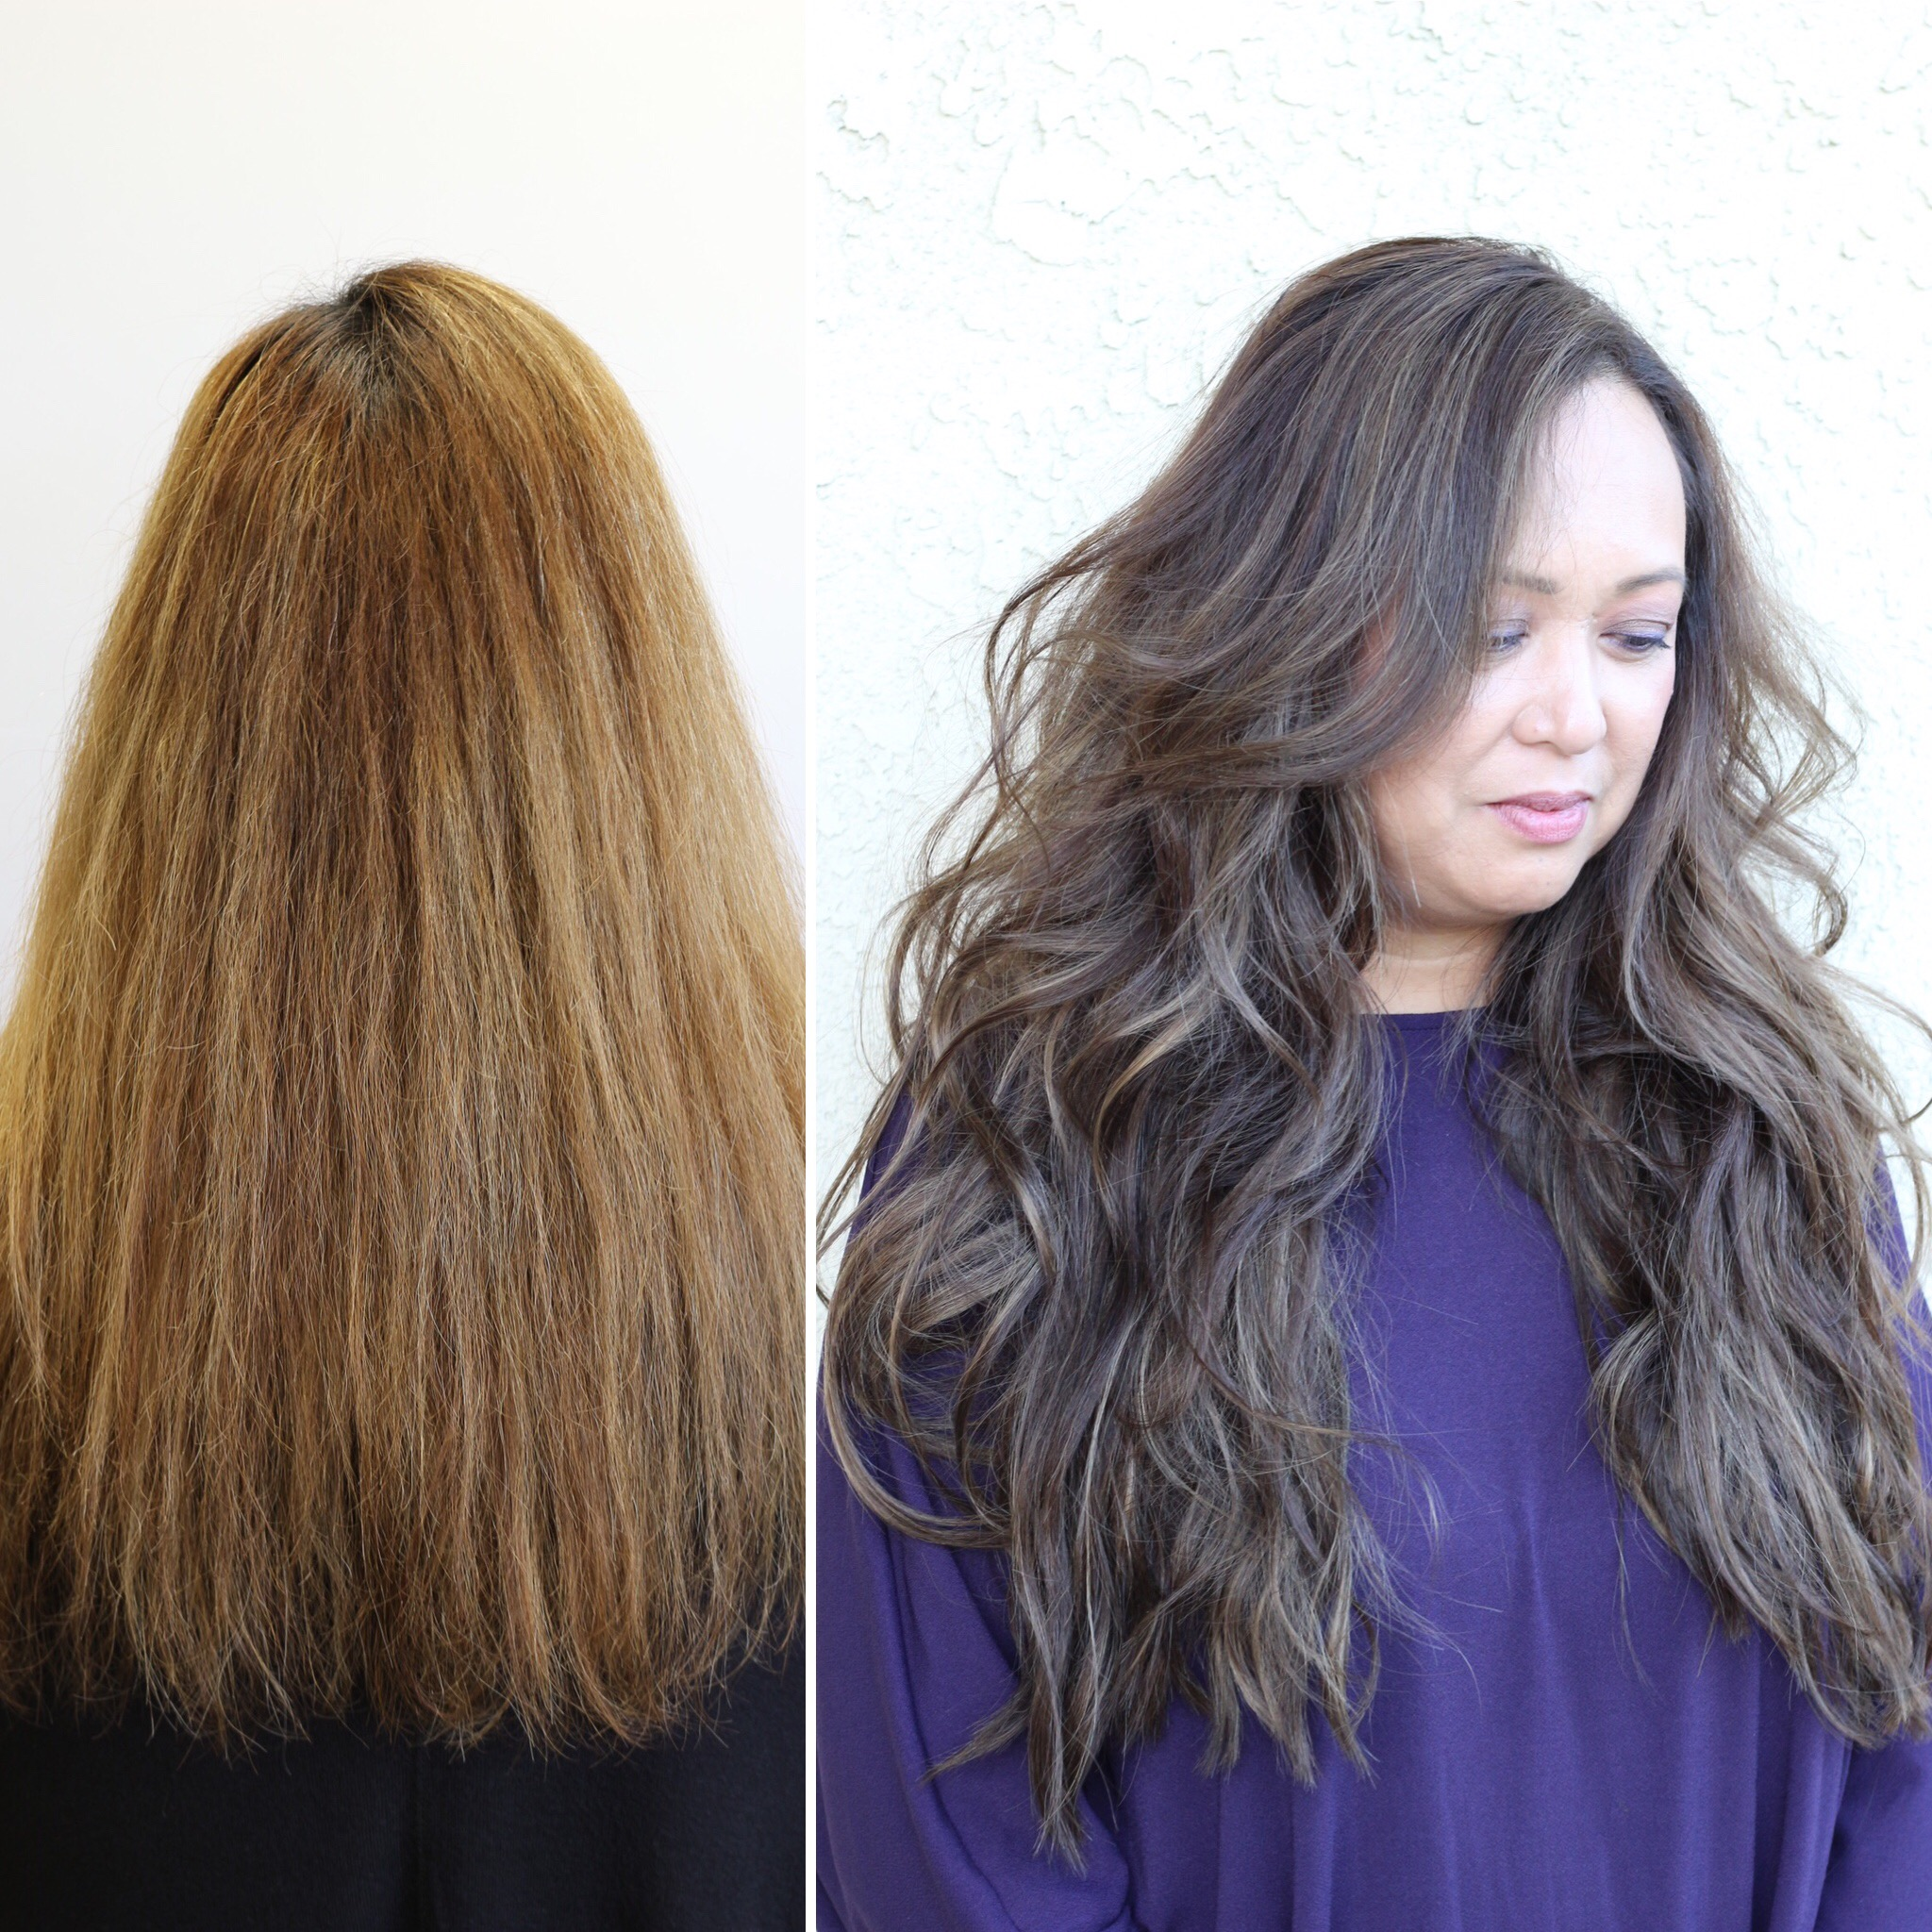 Before & After: a color correction plus 3 rows of extensions for this beauty.